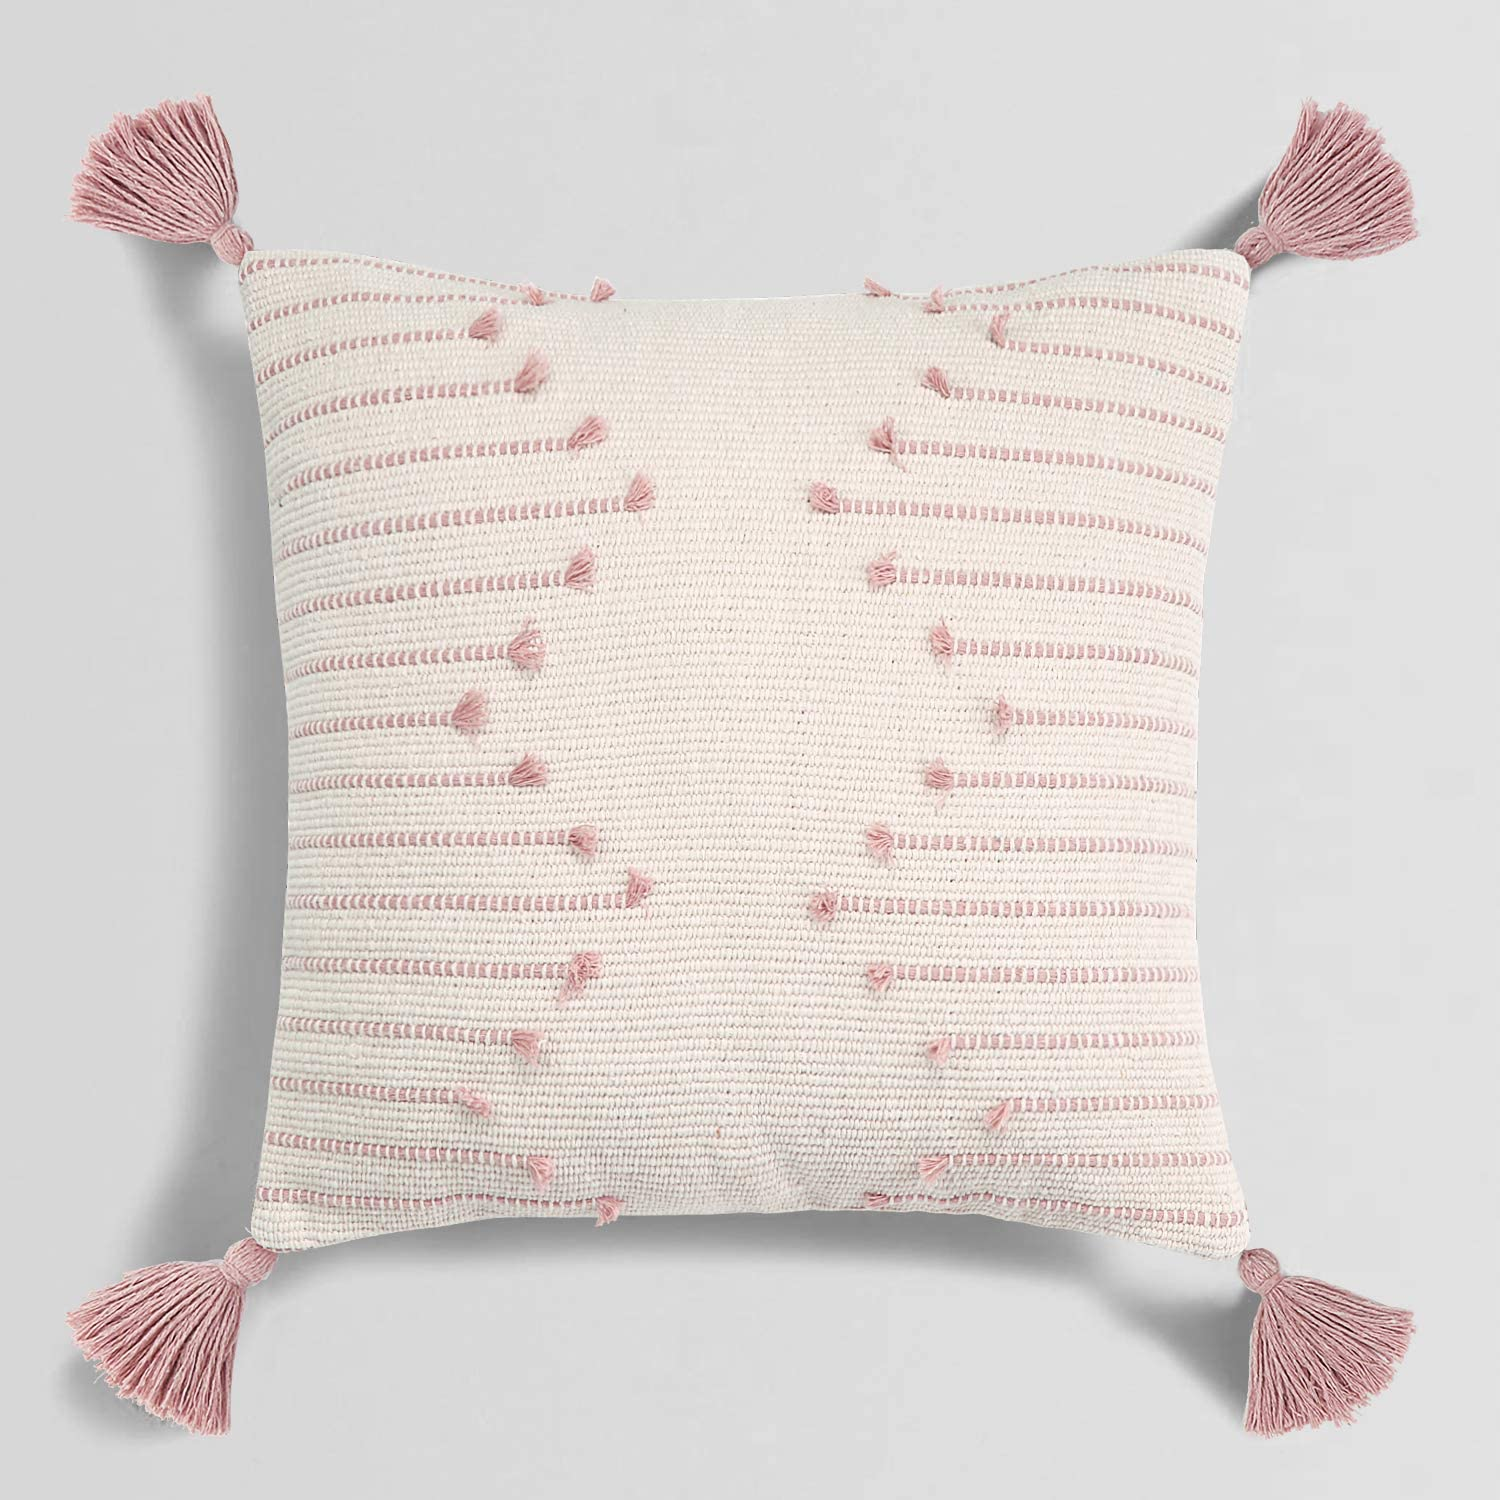 Amazon Com Sungea Farmhouse Pink Throw Pillow Cover 18 X 18 Square Decorative Pillow Case Tribal Geometric Tufted Tassels Woven Cushion Cover Accent Neutral Collection For Sofa Couch Living Room Home Kitchen